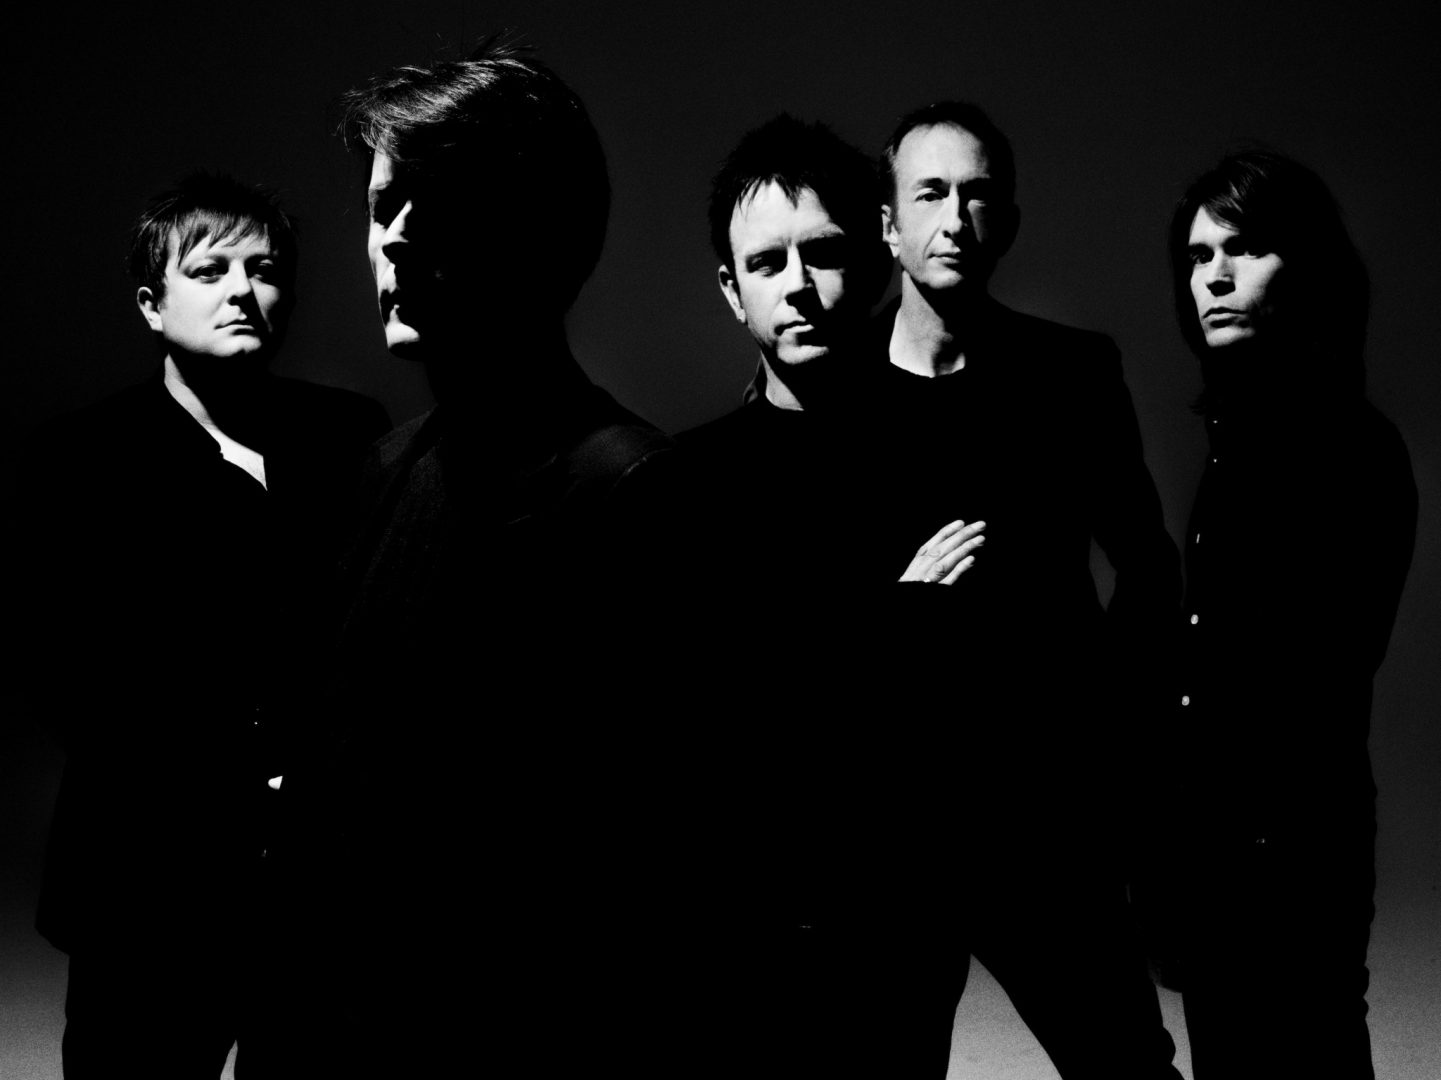 Suede, who recently released new album Night Thoughts